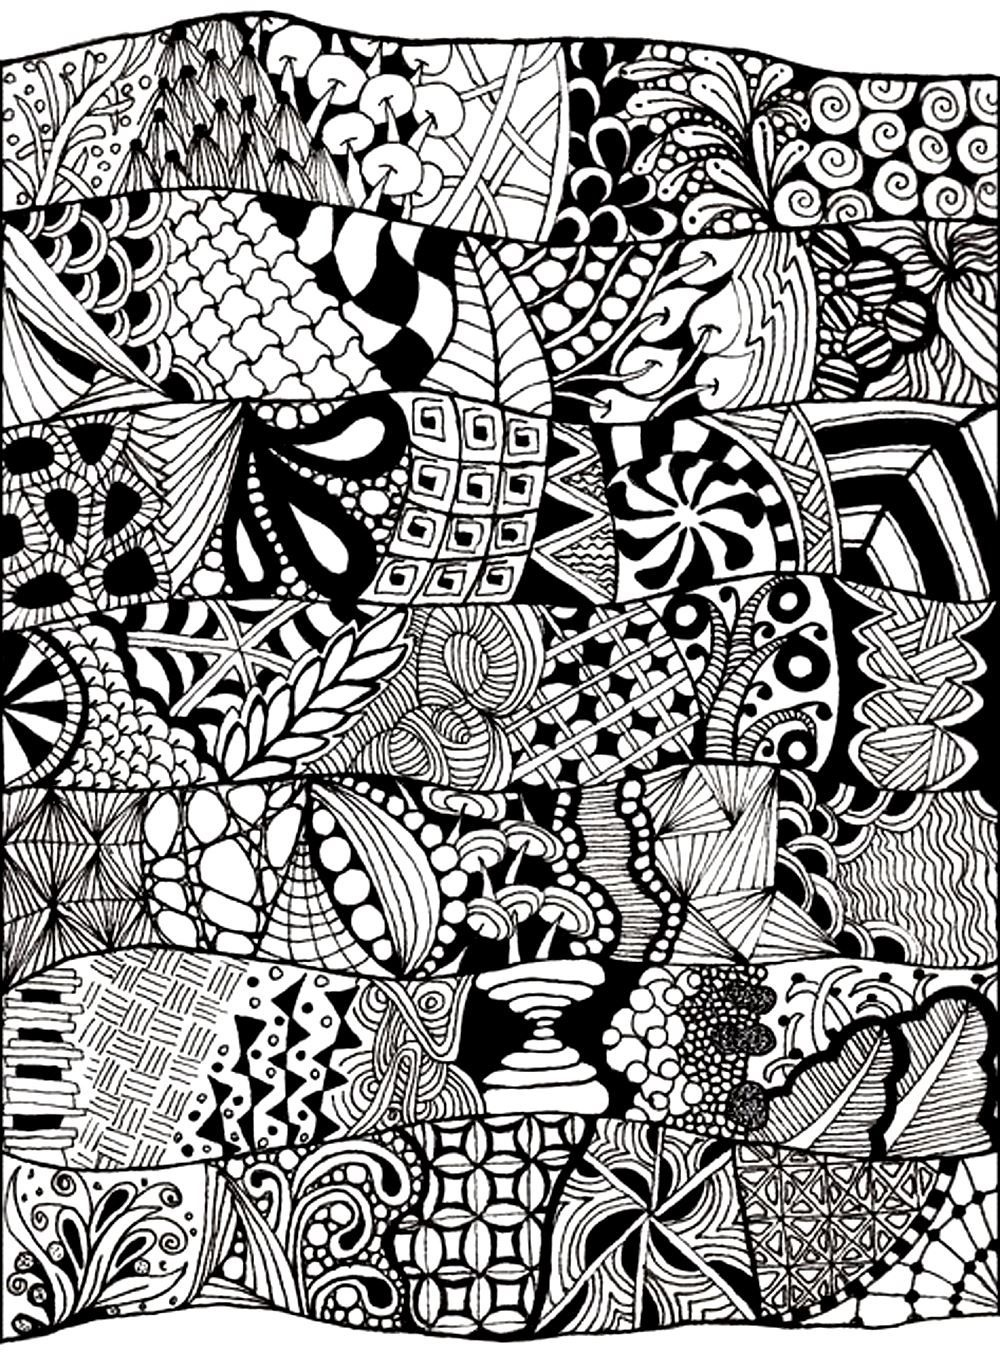 Free Coloring Page «Coloring-Adult-Zen-Anti-Stress-Abstract-To-Pri - Free Printable Doodle Patterns